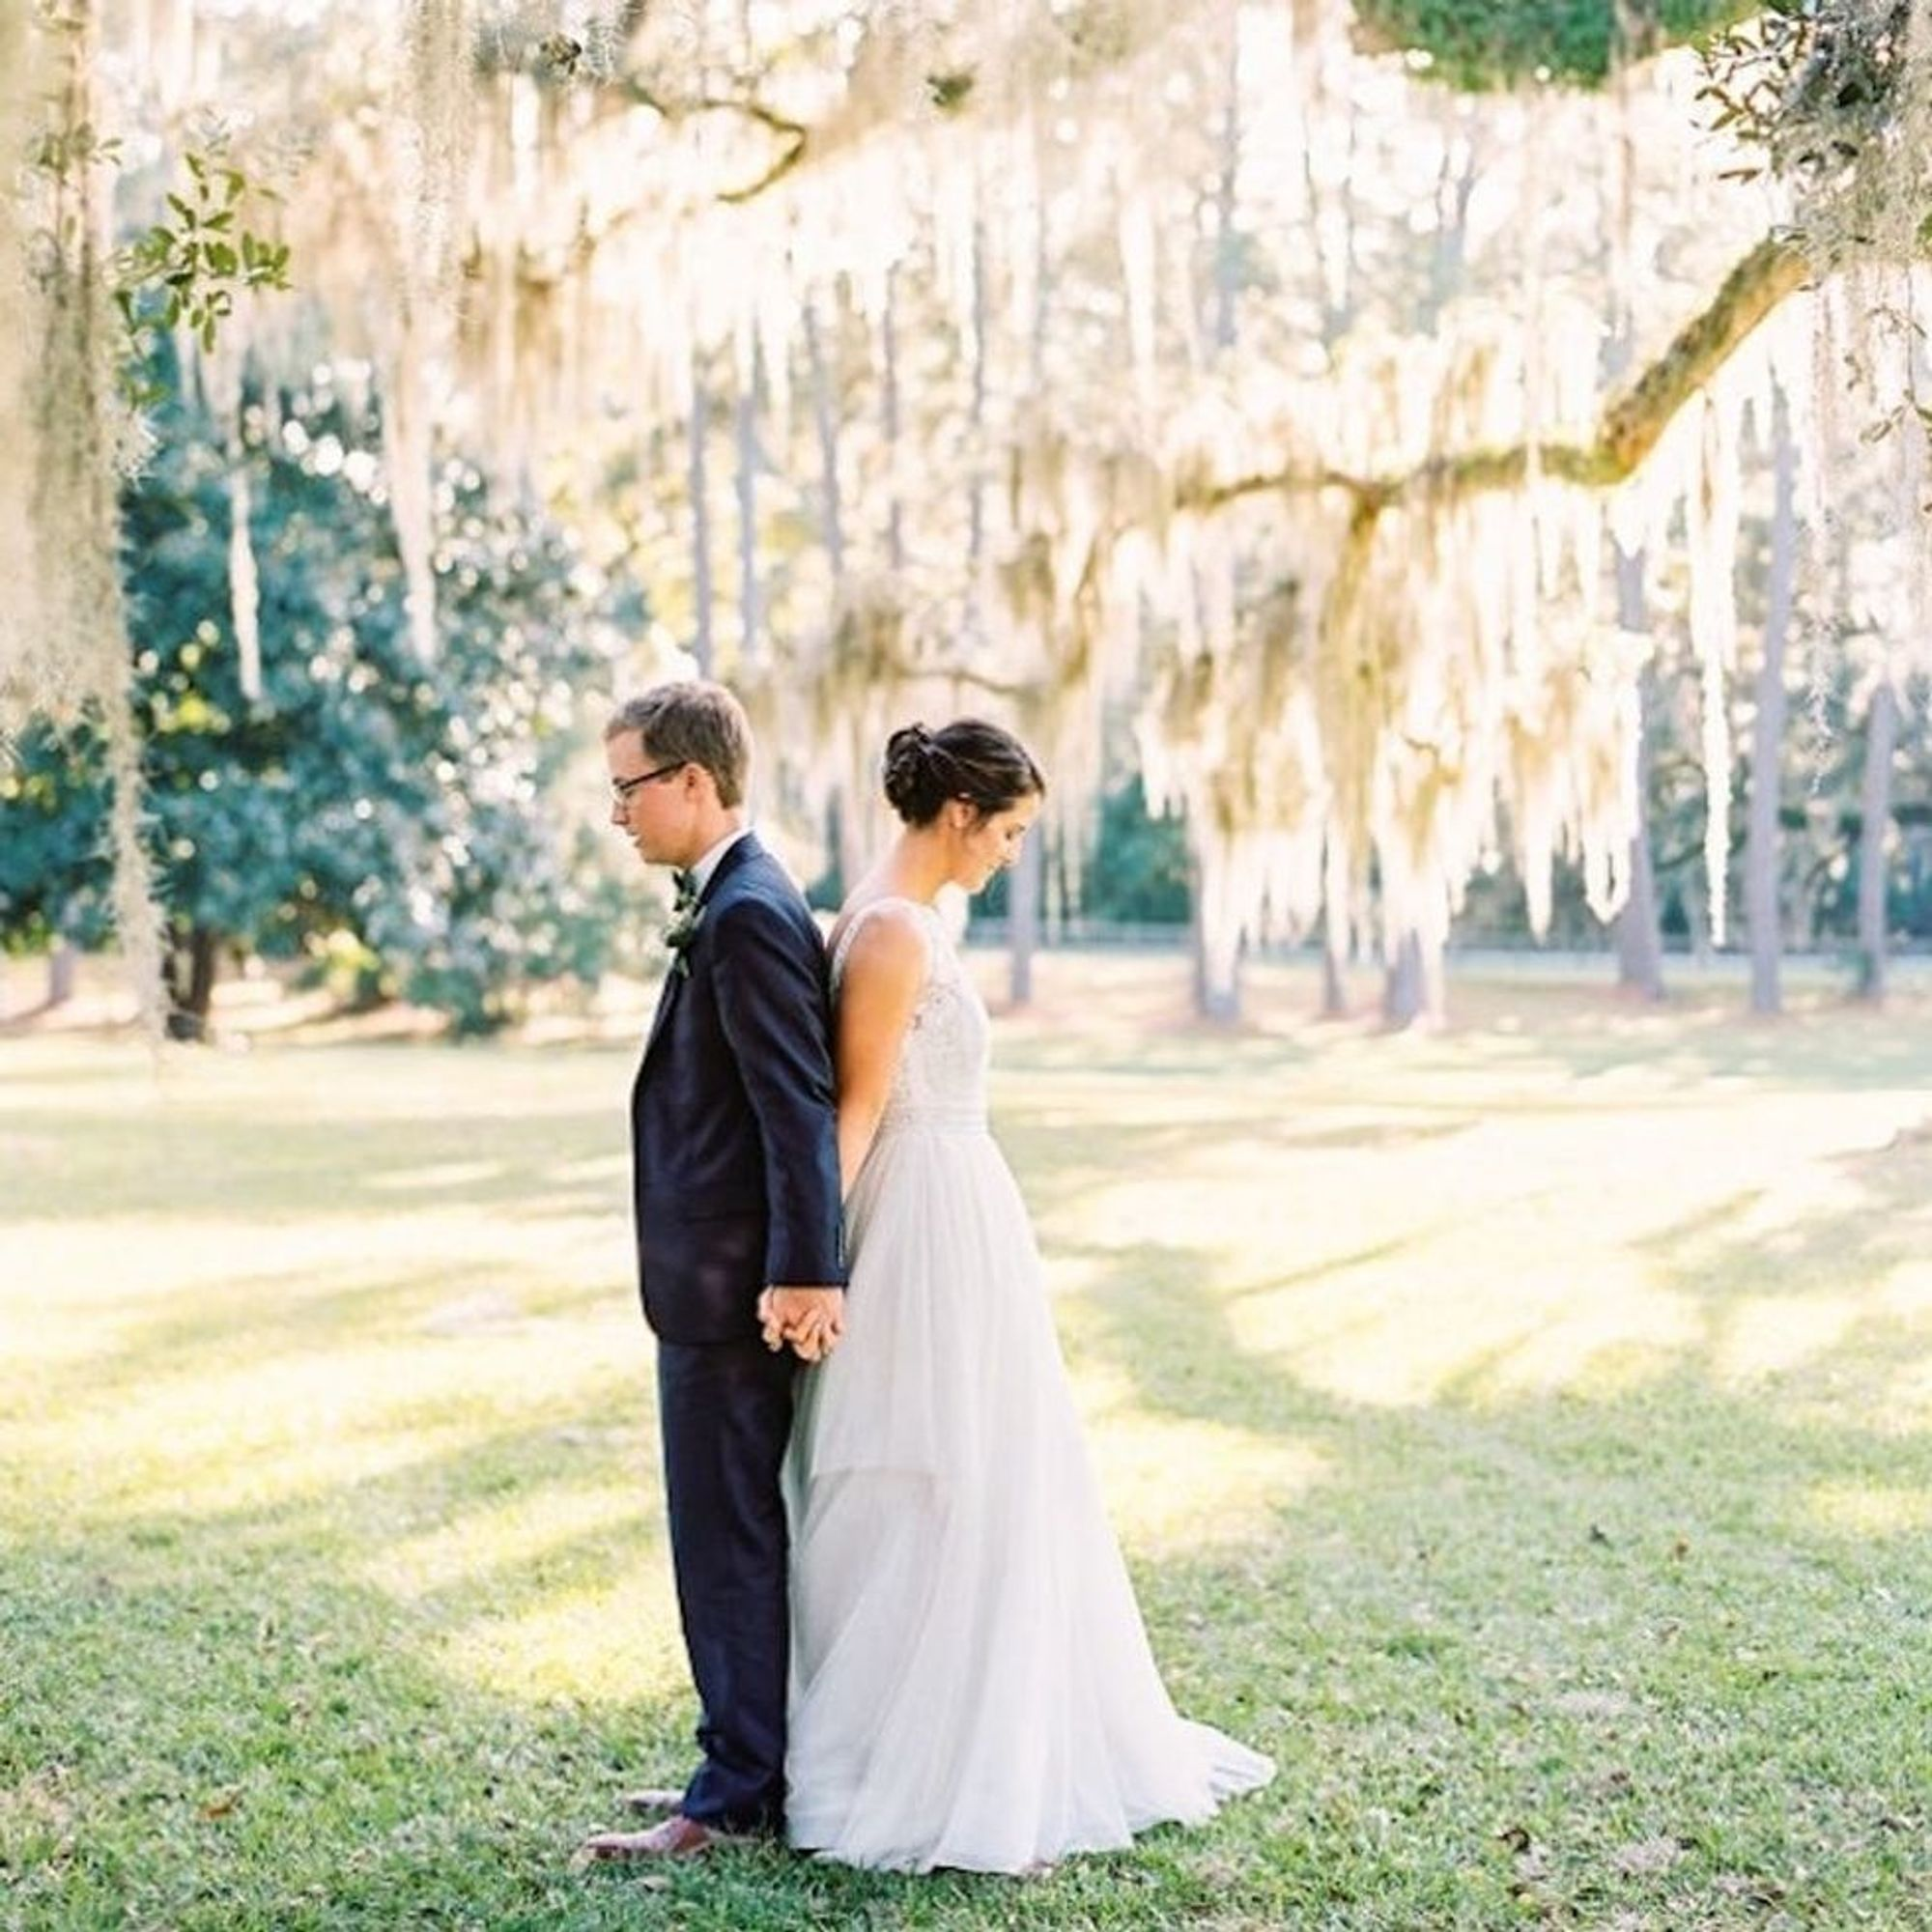 Your Top Wedding Photography Questions Answered by a Pro